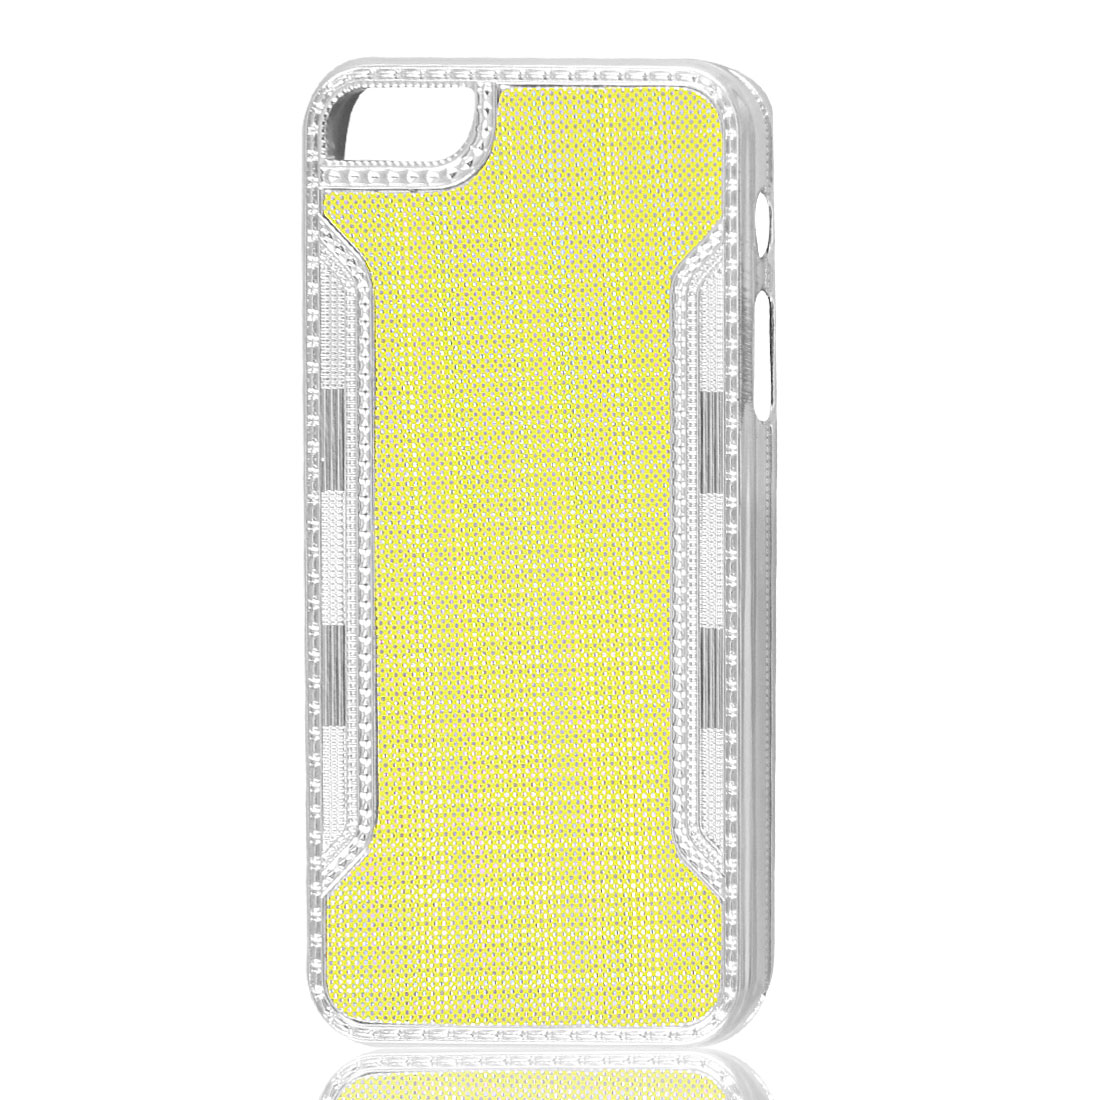 Bling Glitter Sparkling Yellow Hard Back Case Cover for iPhone 5 5G 5th